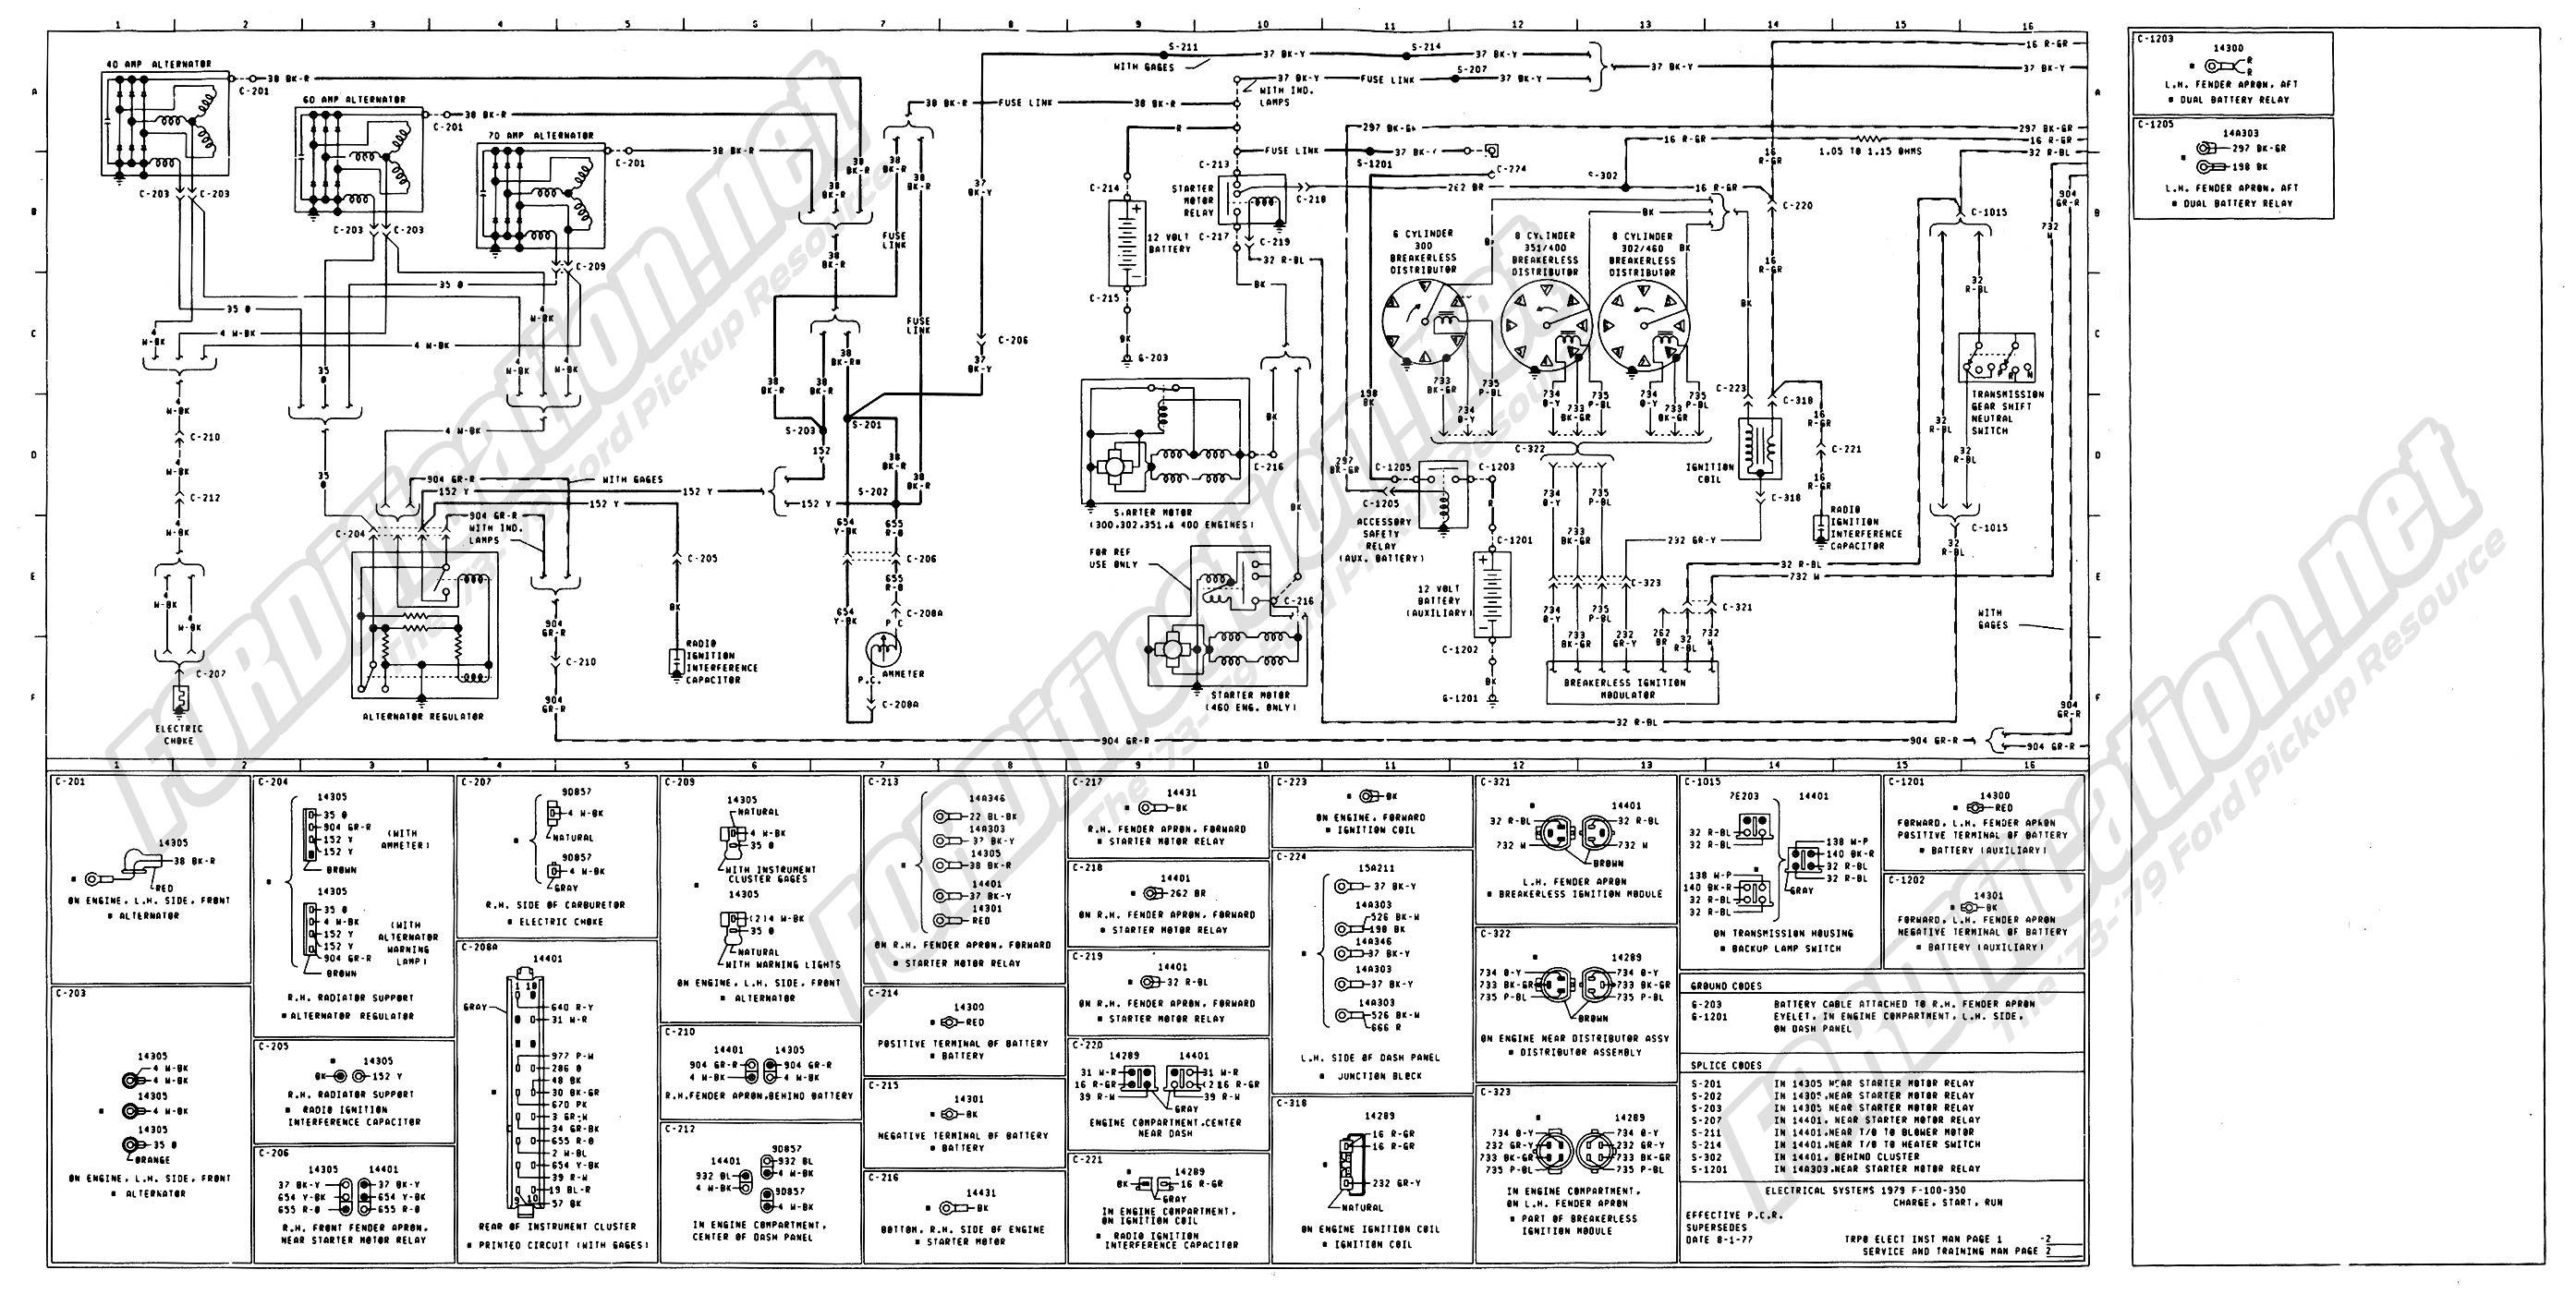 1973 1979 ford truck wiring diagrams schematics fordification net rh fordification net 1978 ford f250 wiring schematic 78 ford f250 wiring diagram